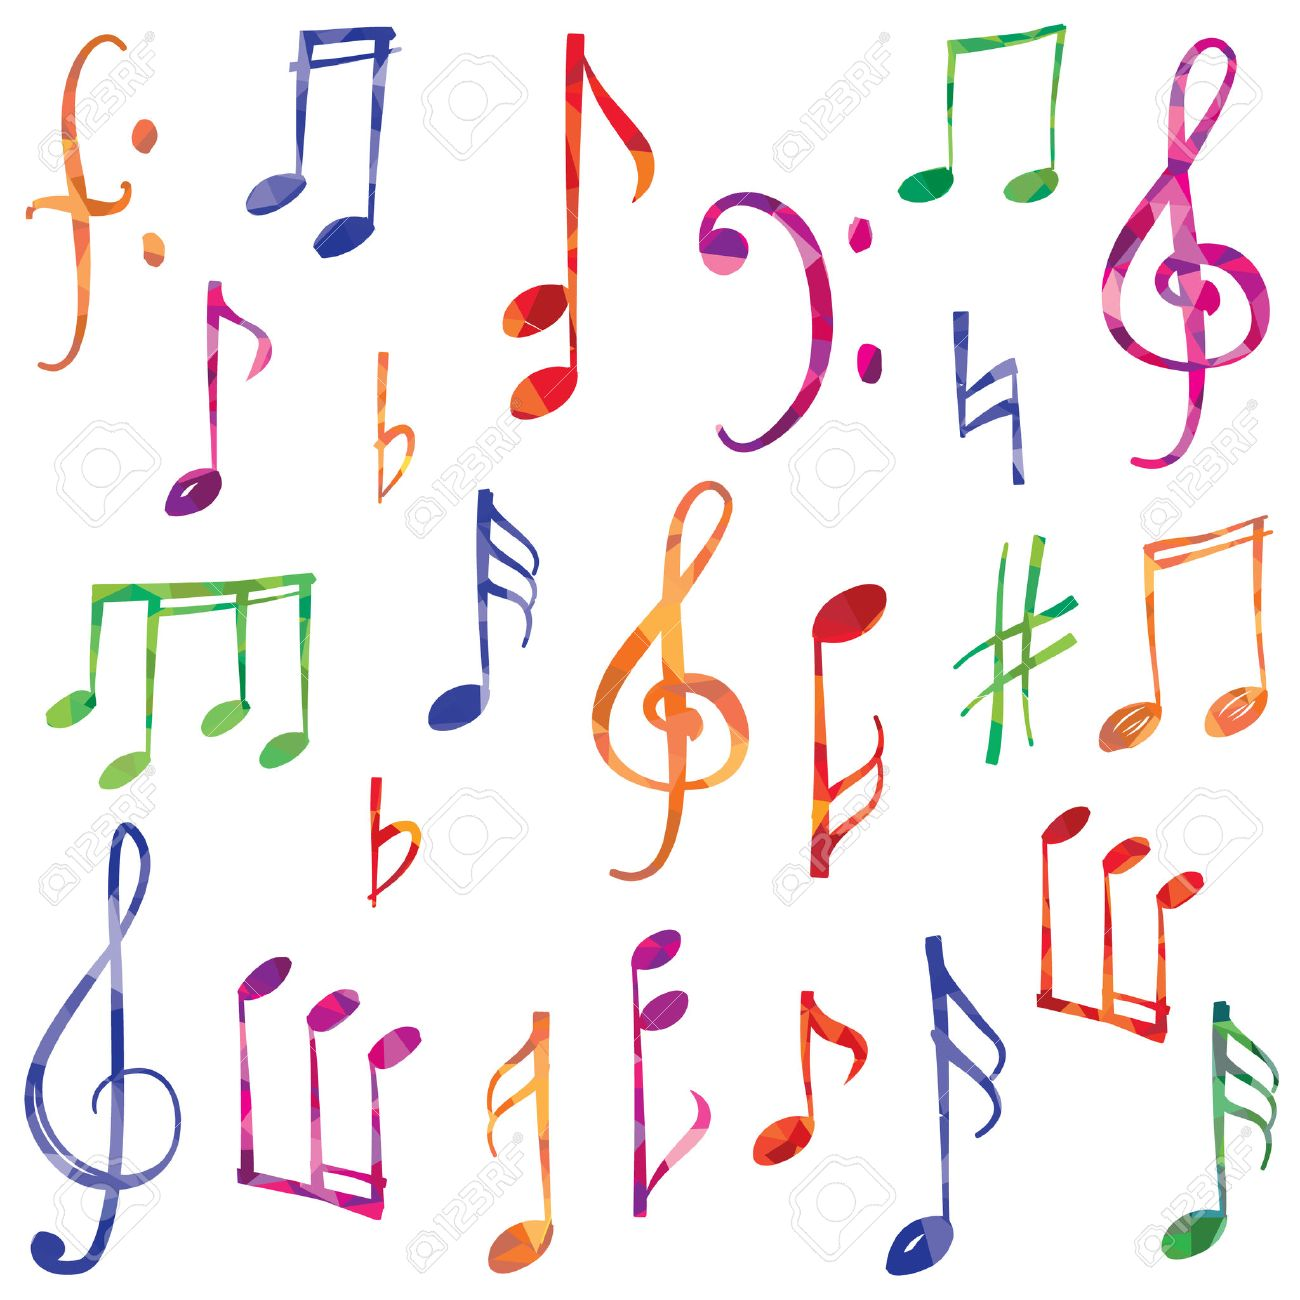 Music notes and signs set. Hand drawn music symbol sketch collection Stock Vector - 57712090